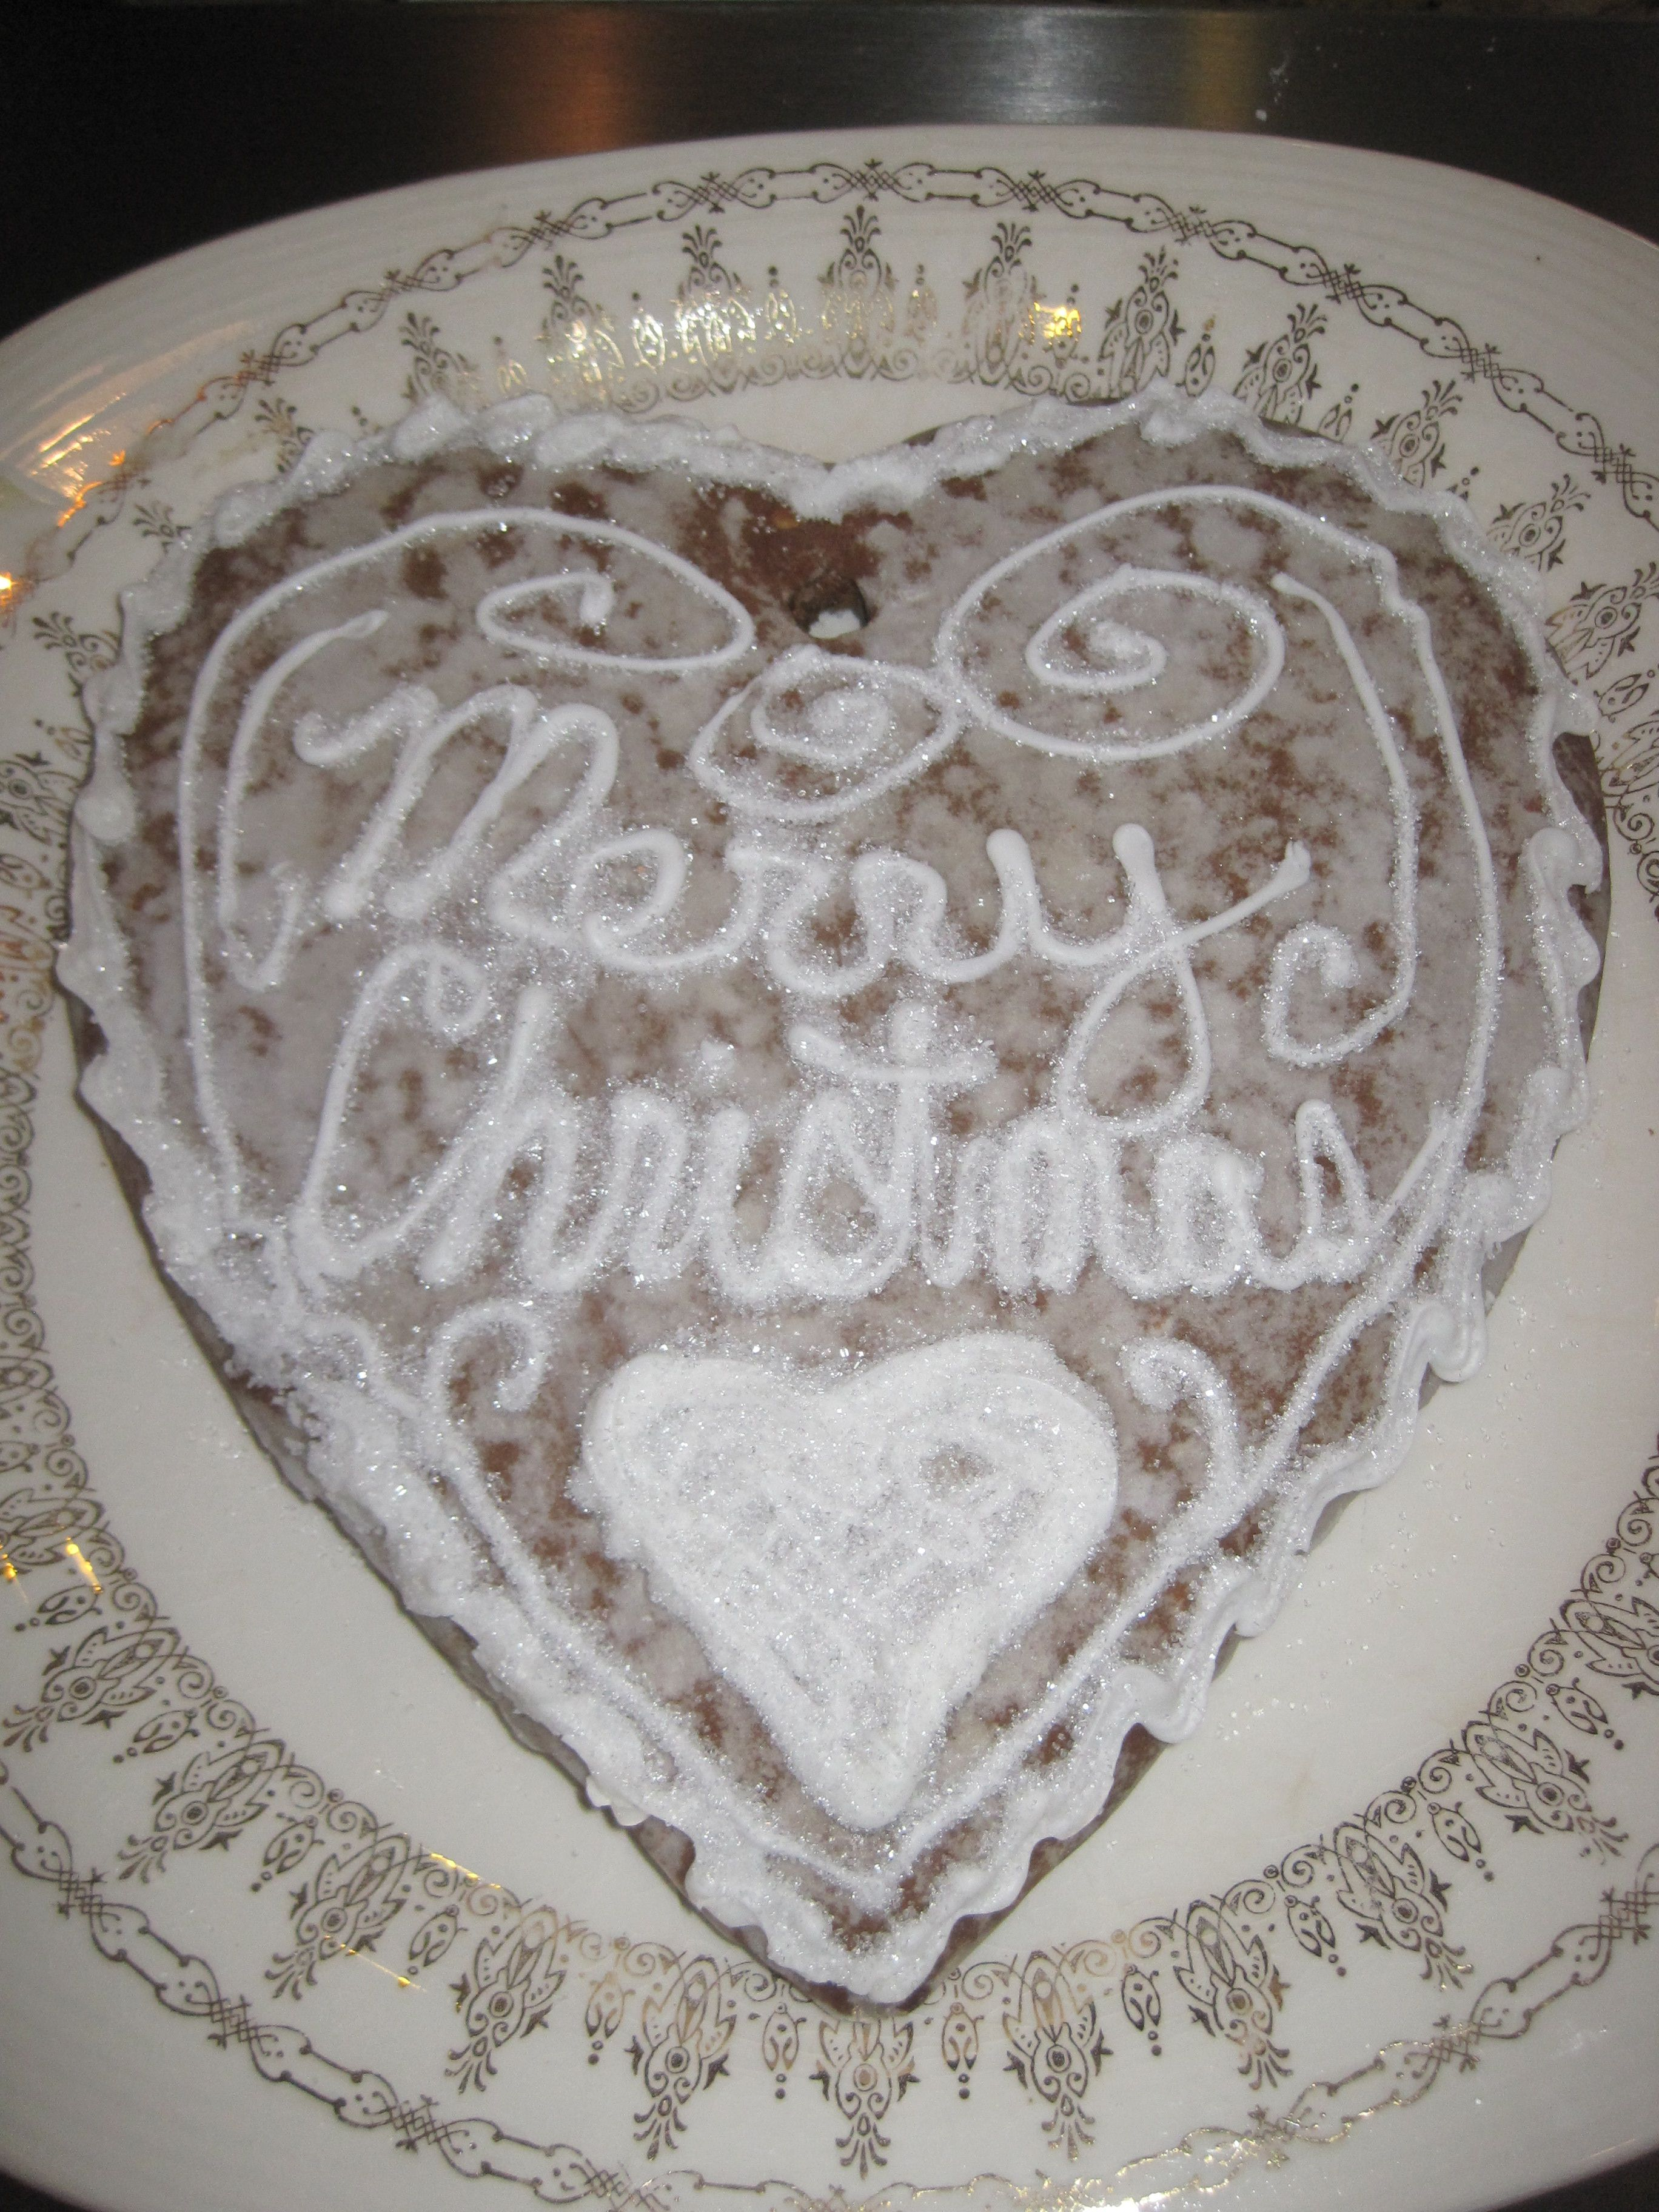 Giant gingerbread heart by nancy bortz